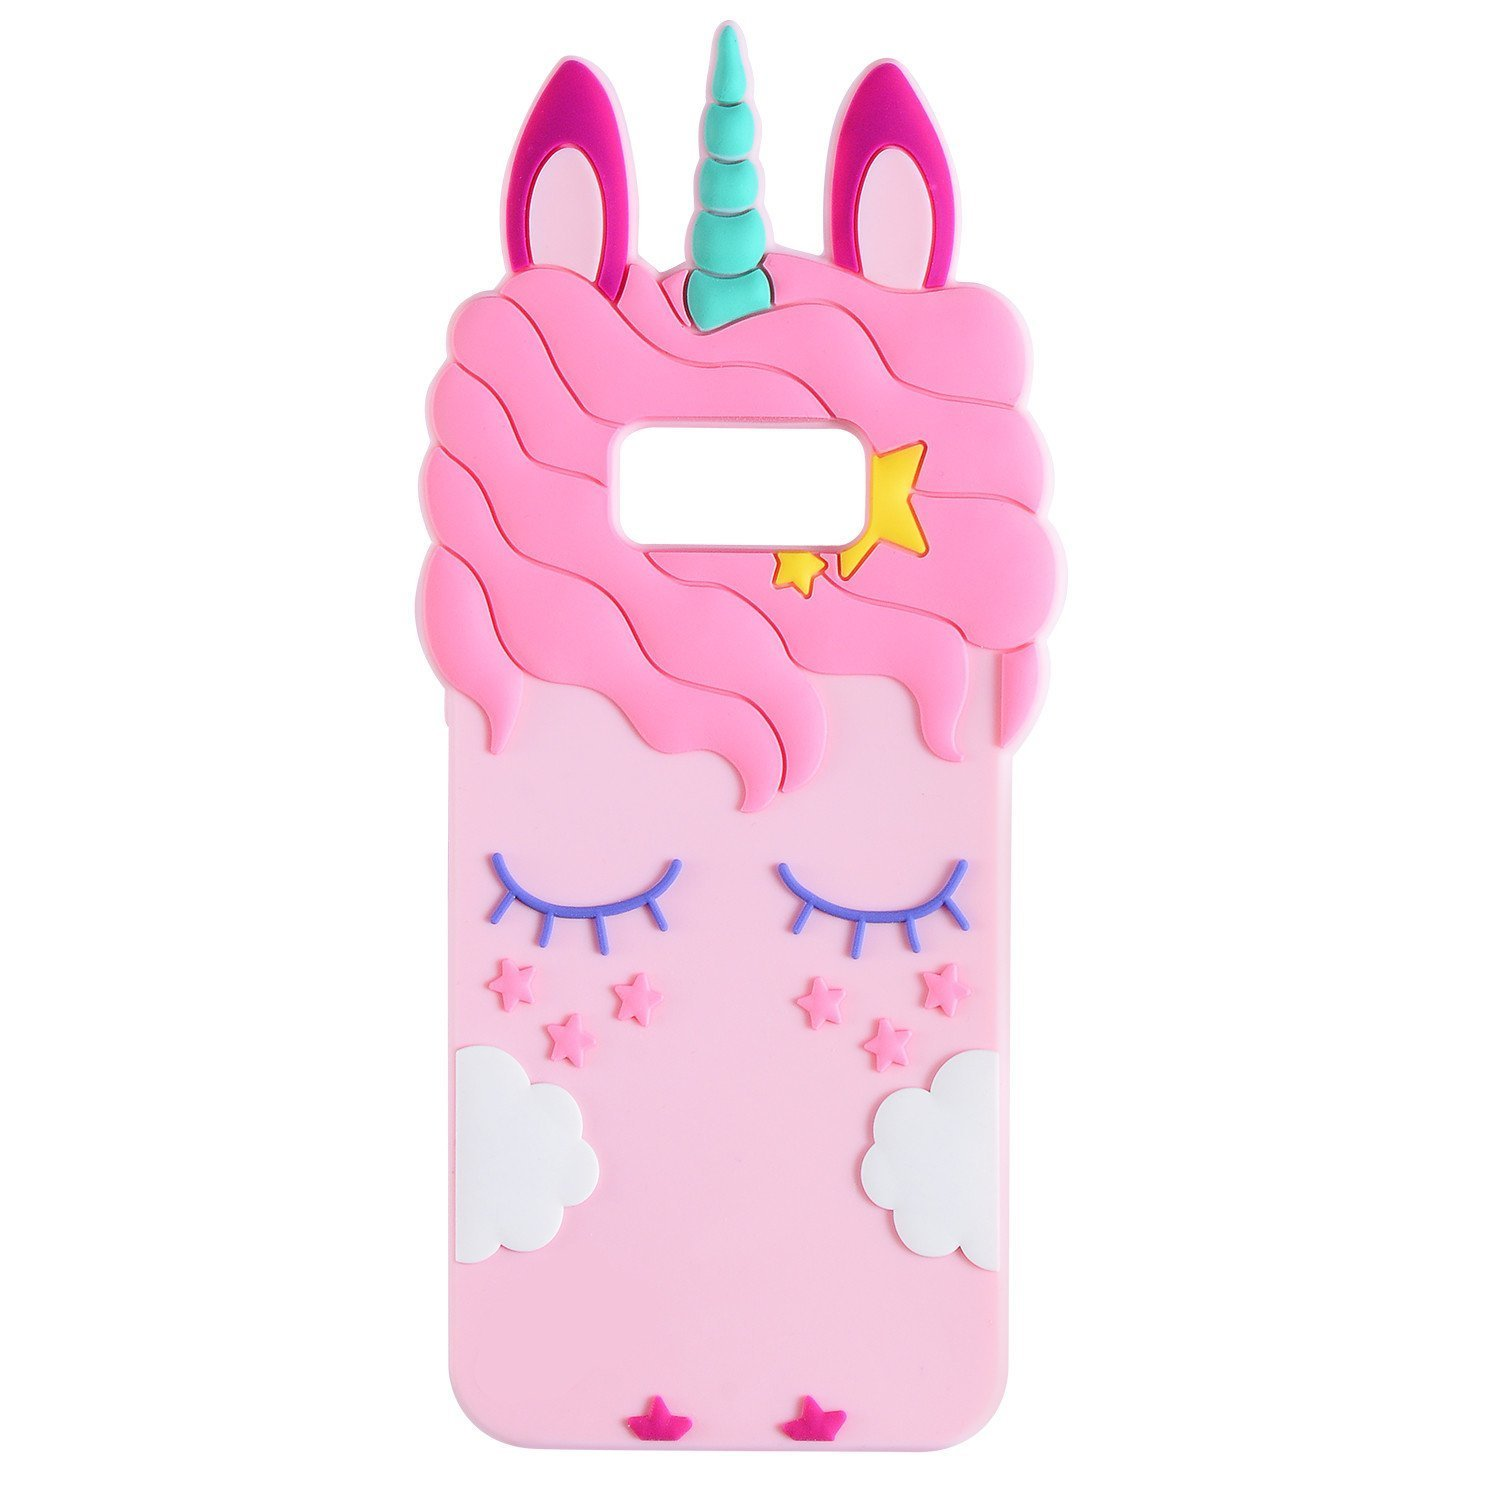 Cartoon Case for Samsung S9 2018, SevenPanda Silicone Star Cute Adorable 3D Eyelash Ears Design Funny Case Shockproof and Protective Soft Cover for Samsung Galaxy S9 - Pink Unicorn S9-JieMaoMa-Fen